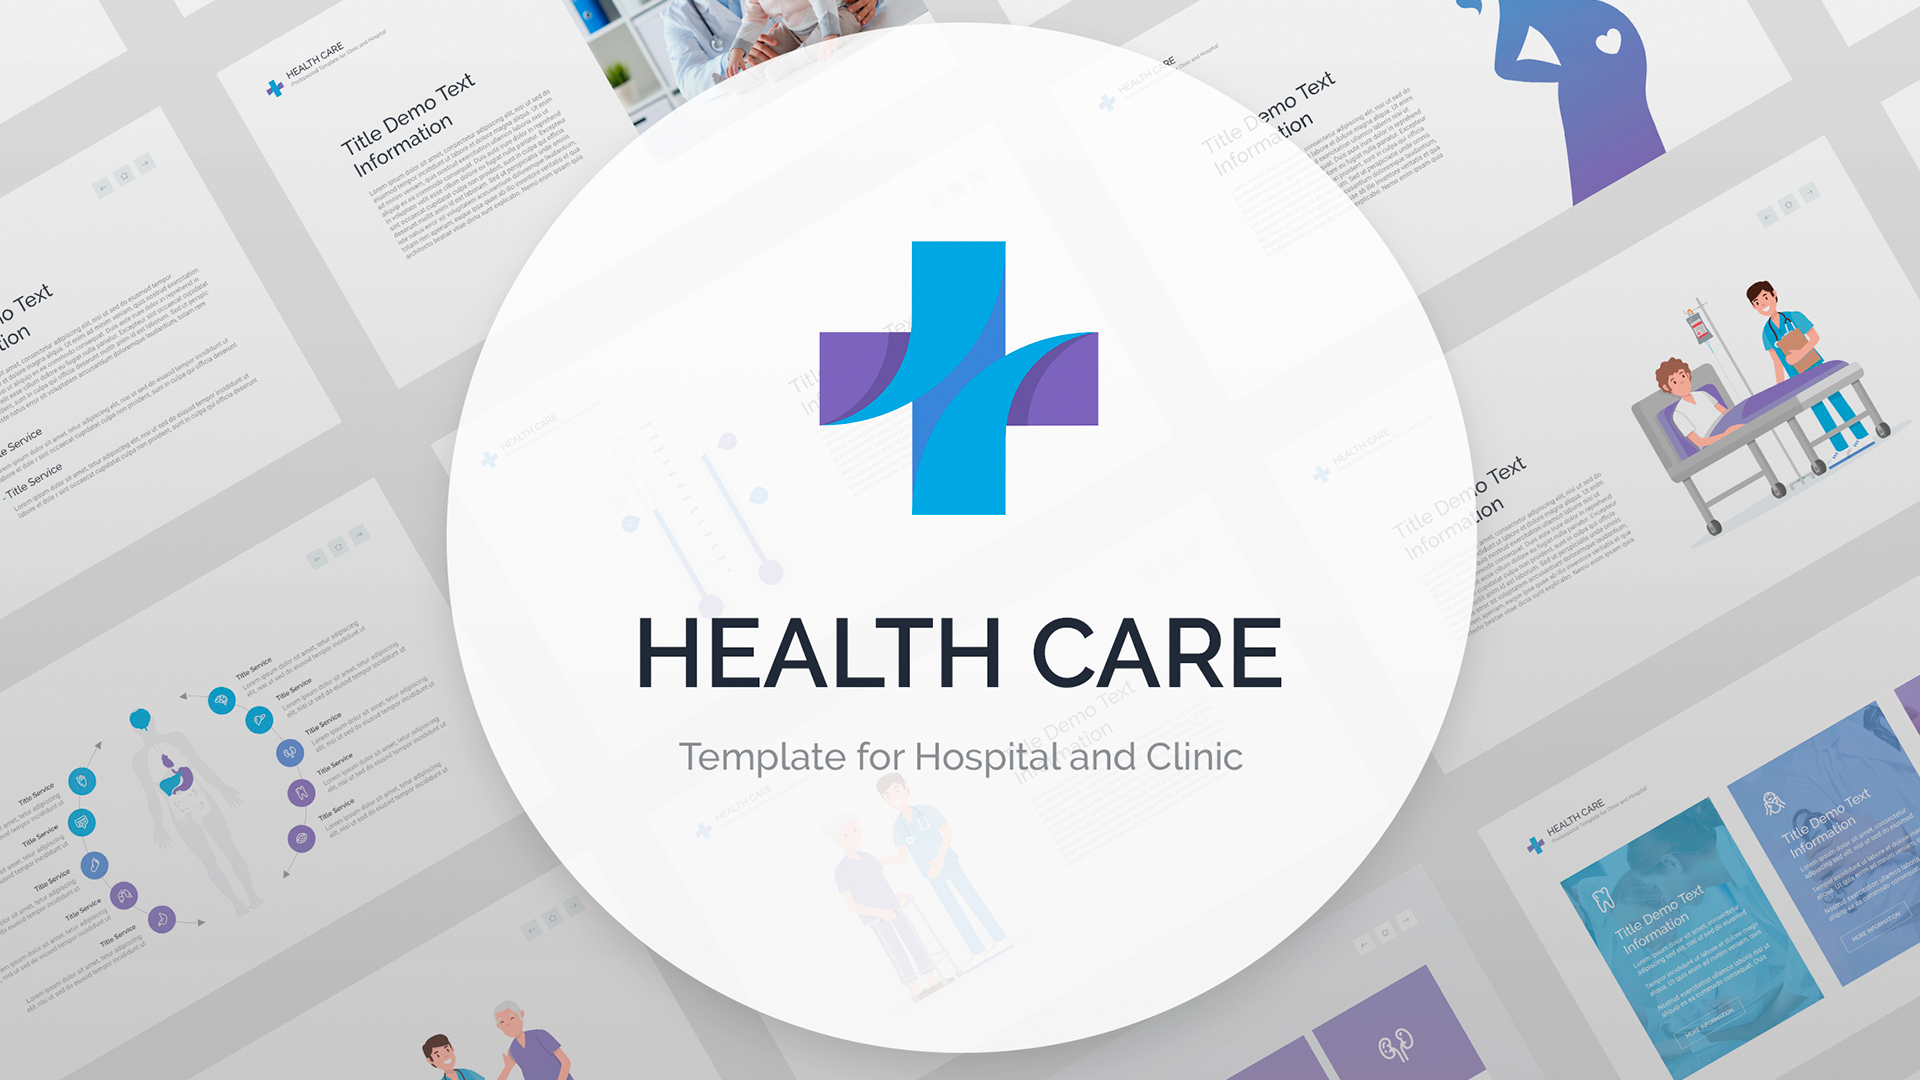 Health Care presentation PowerPoint template